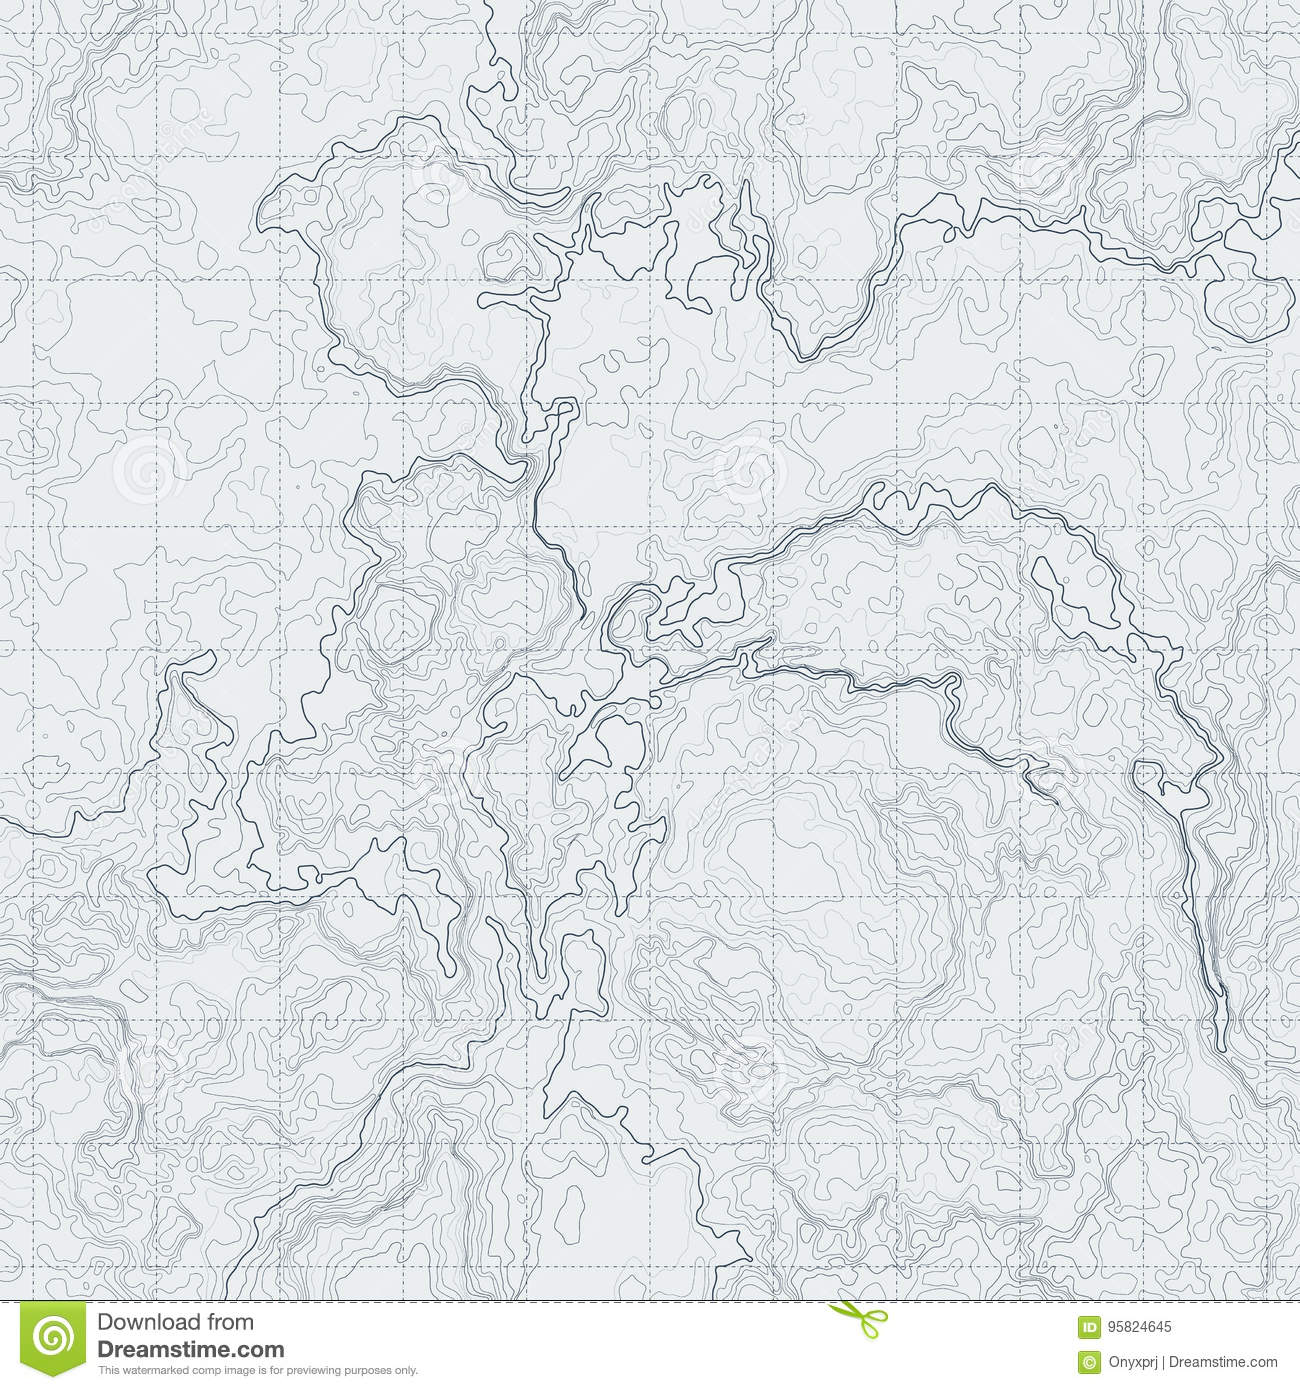 Abstract Contour Map With Different Relief Topographic Vector